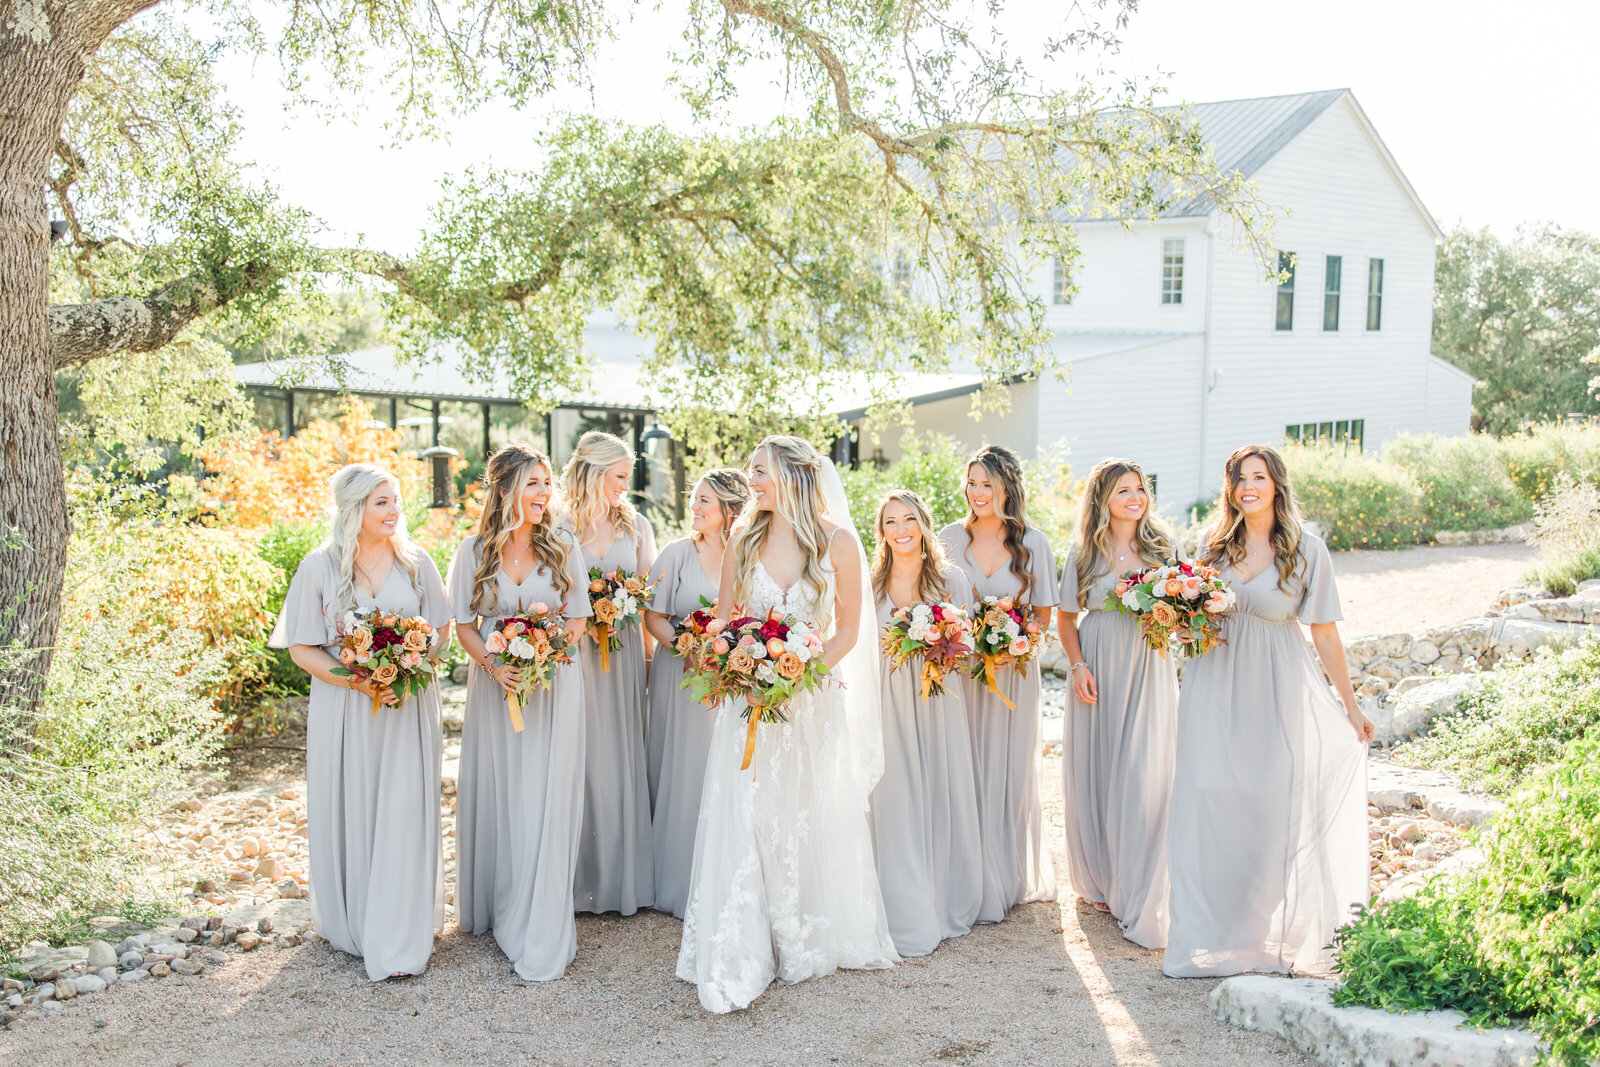 Contigo ranch wedding by fredericksburg texas wedding photographer Allison Jeffers